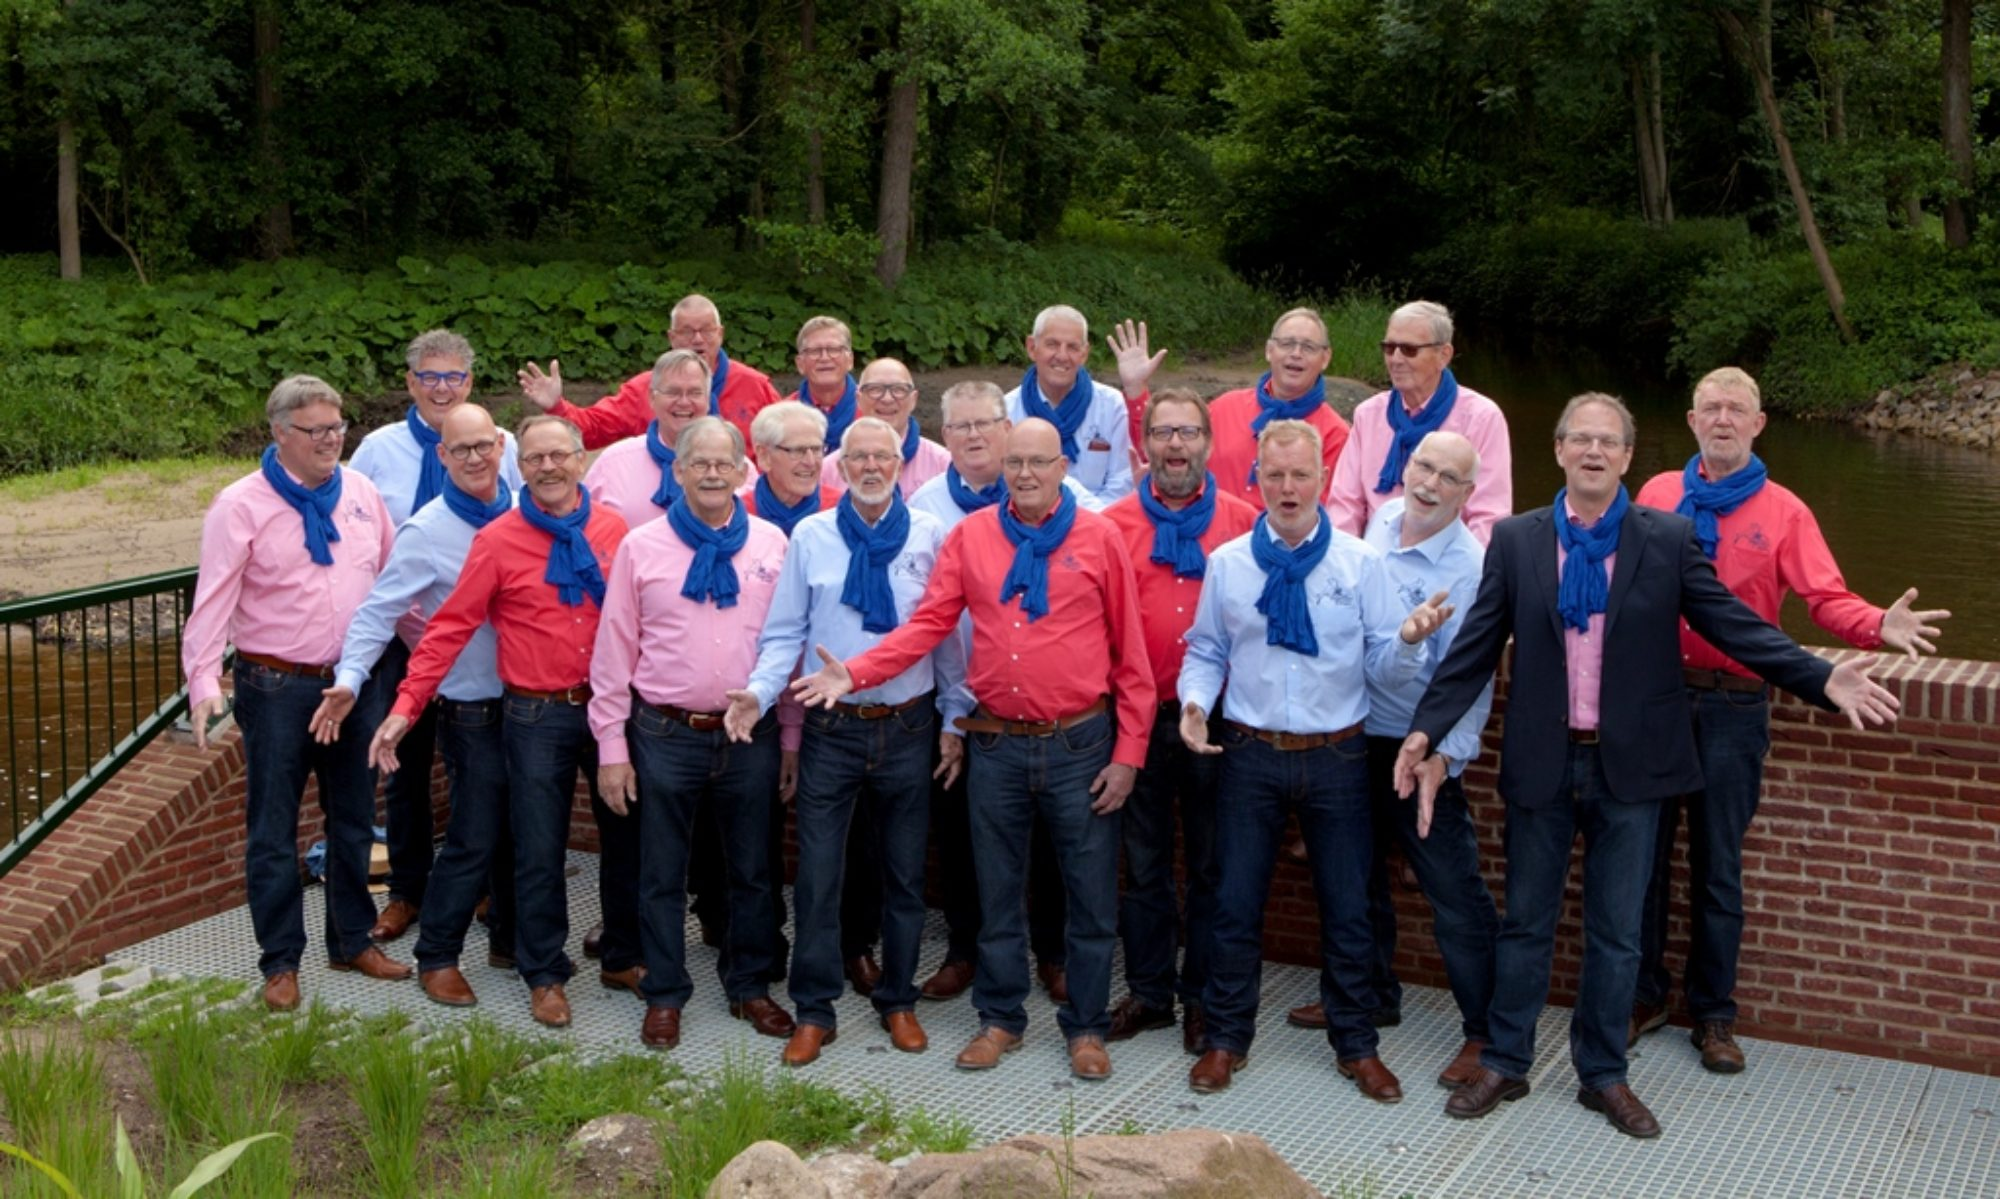 Greyhound Barbershop Singers